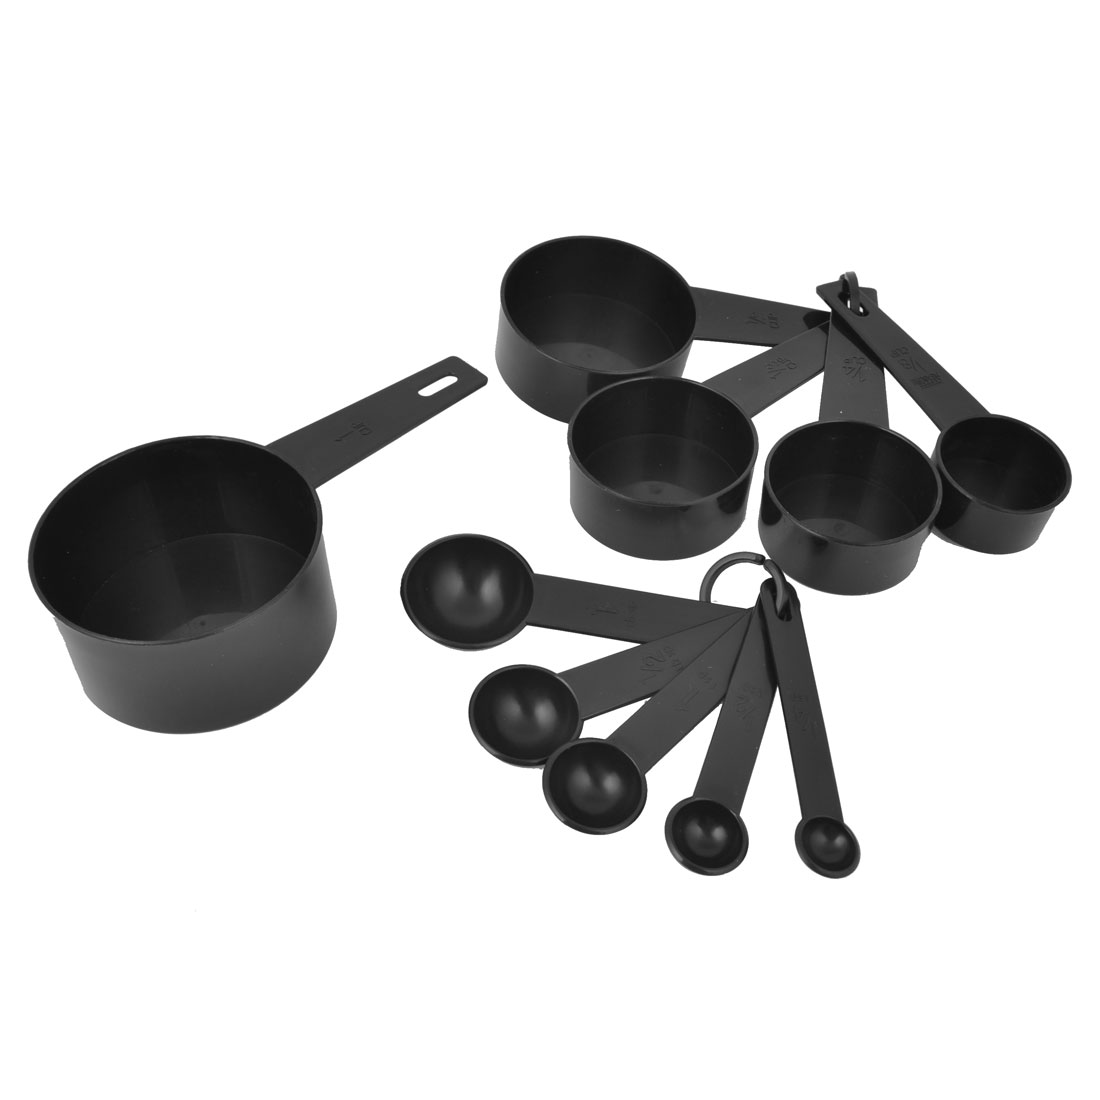 Kitchen 10 Pcs Black Round Shape Oval Handle 1/4tsp-1cup Measure Spoons